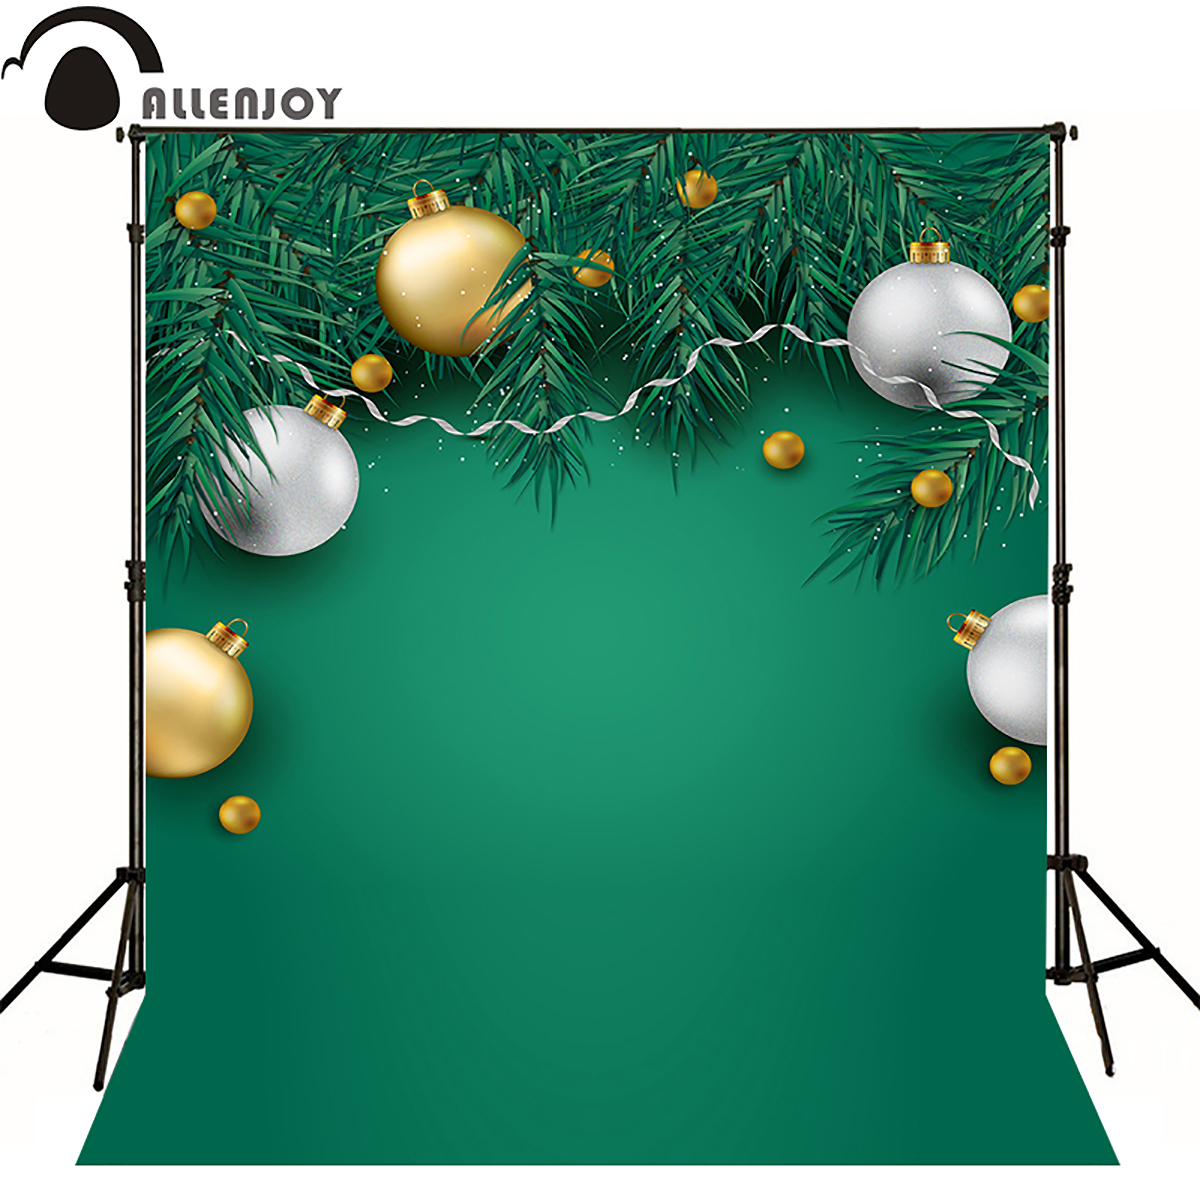 Allen joy christmas photography backdrops green winter xmas new year lamp newborn baby shower snow background Discount sale